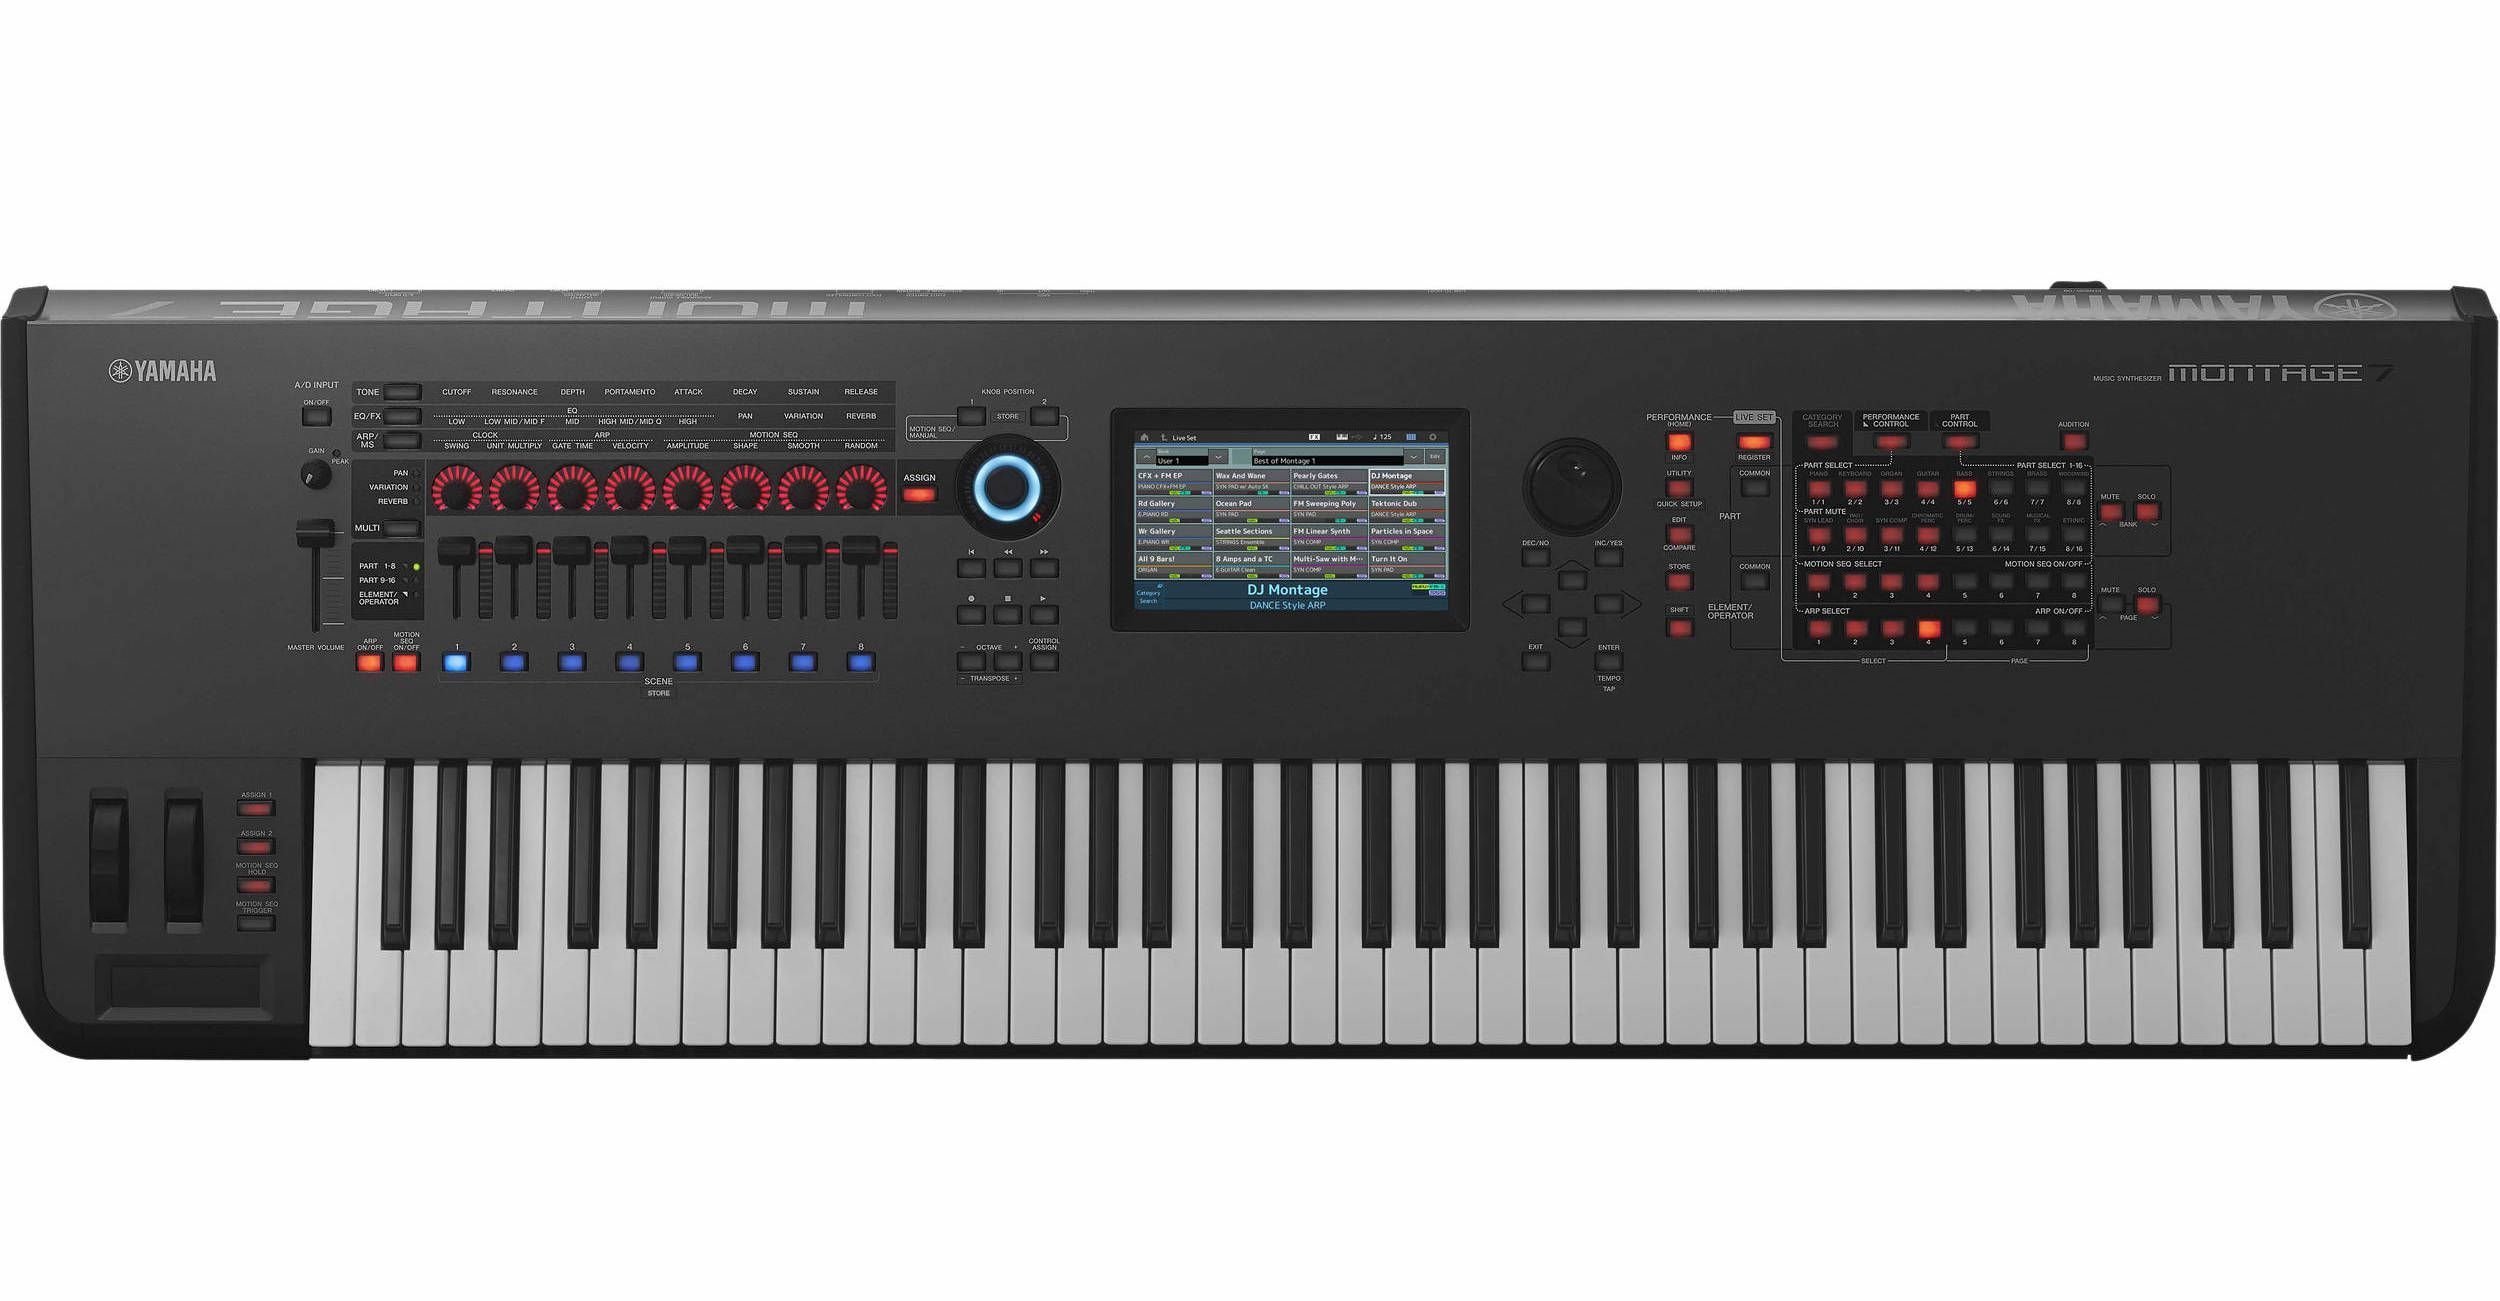 The successor of the Yamaha Motif music production